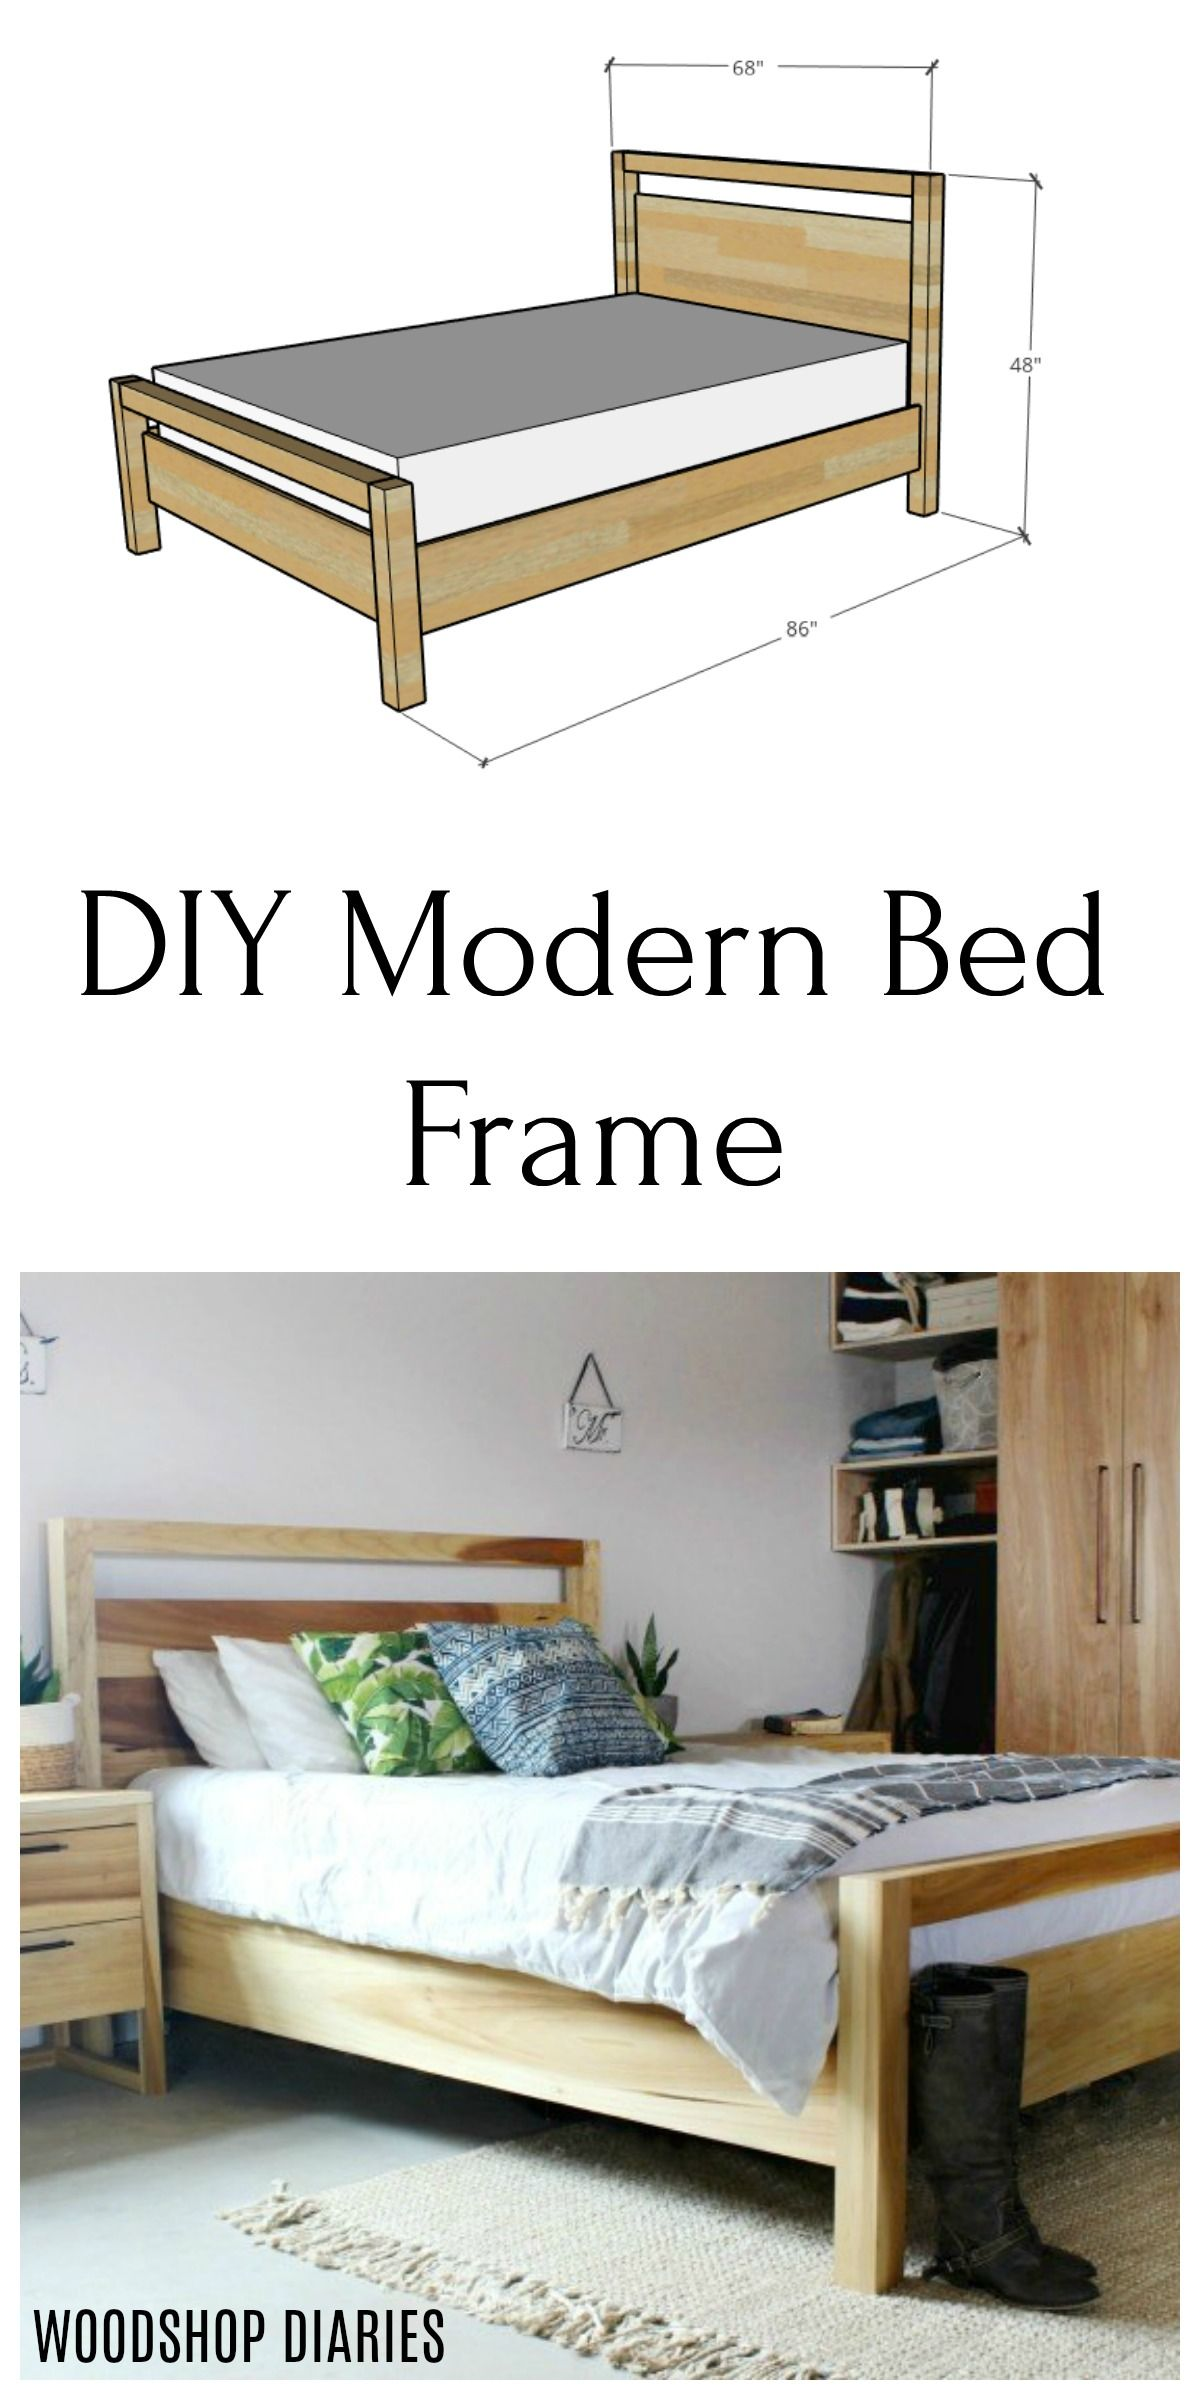 Diy Modern Bed Frame How To Build It In 7 Easy Steps In 2020